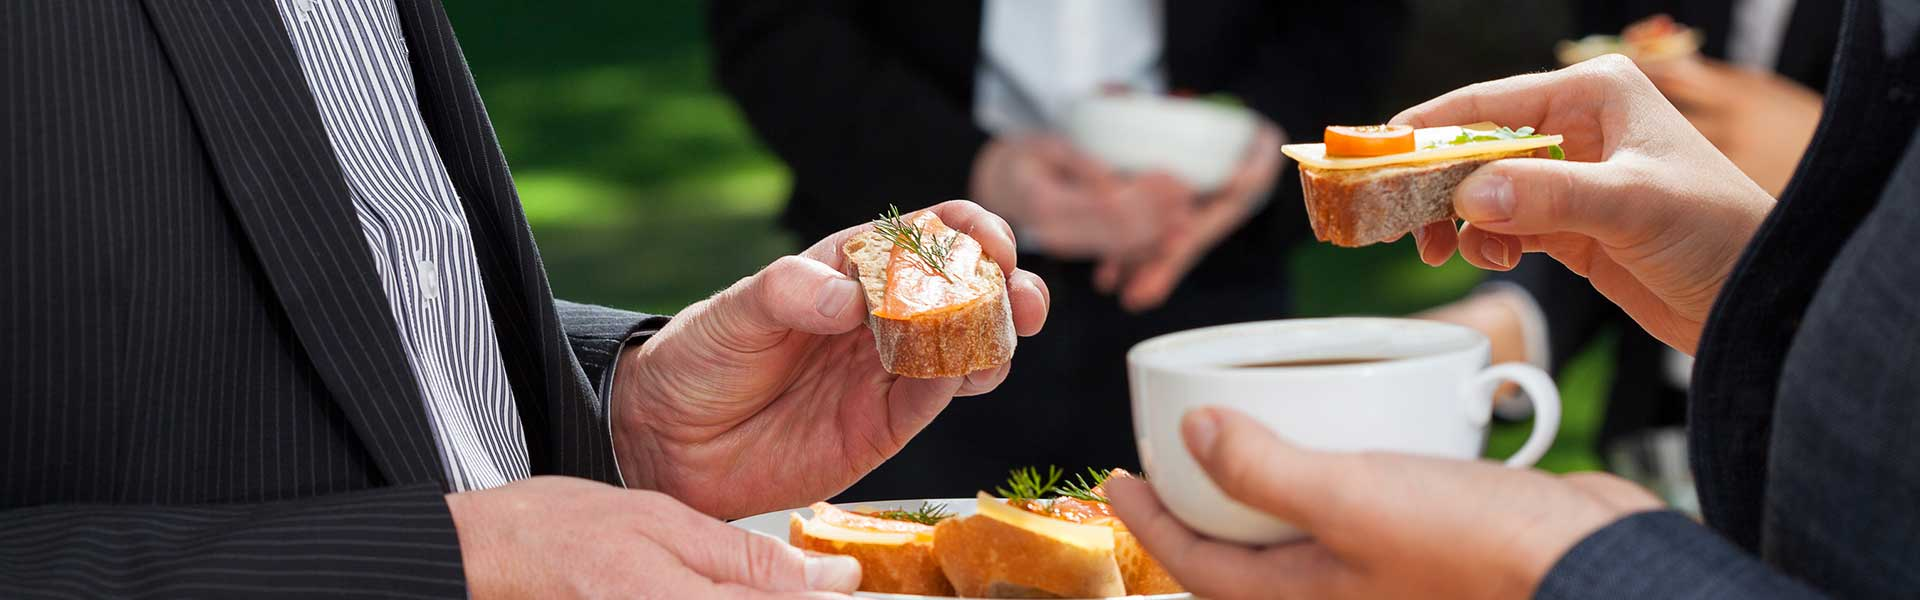 https://thefrenchgourmet.com/wp-content/uploads/2018/02/corporate-catering-informal.jpg